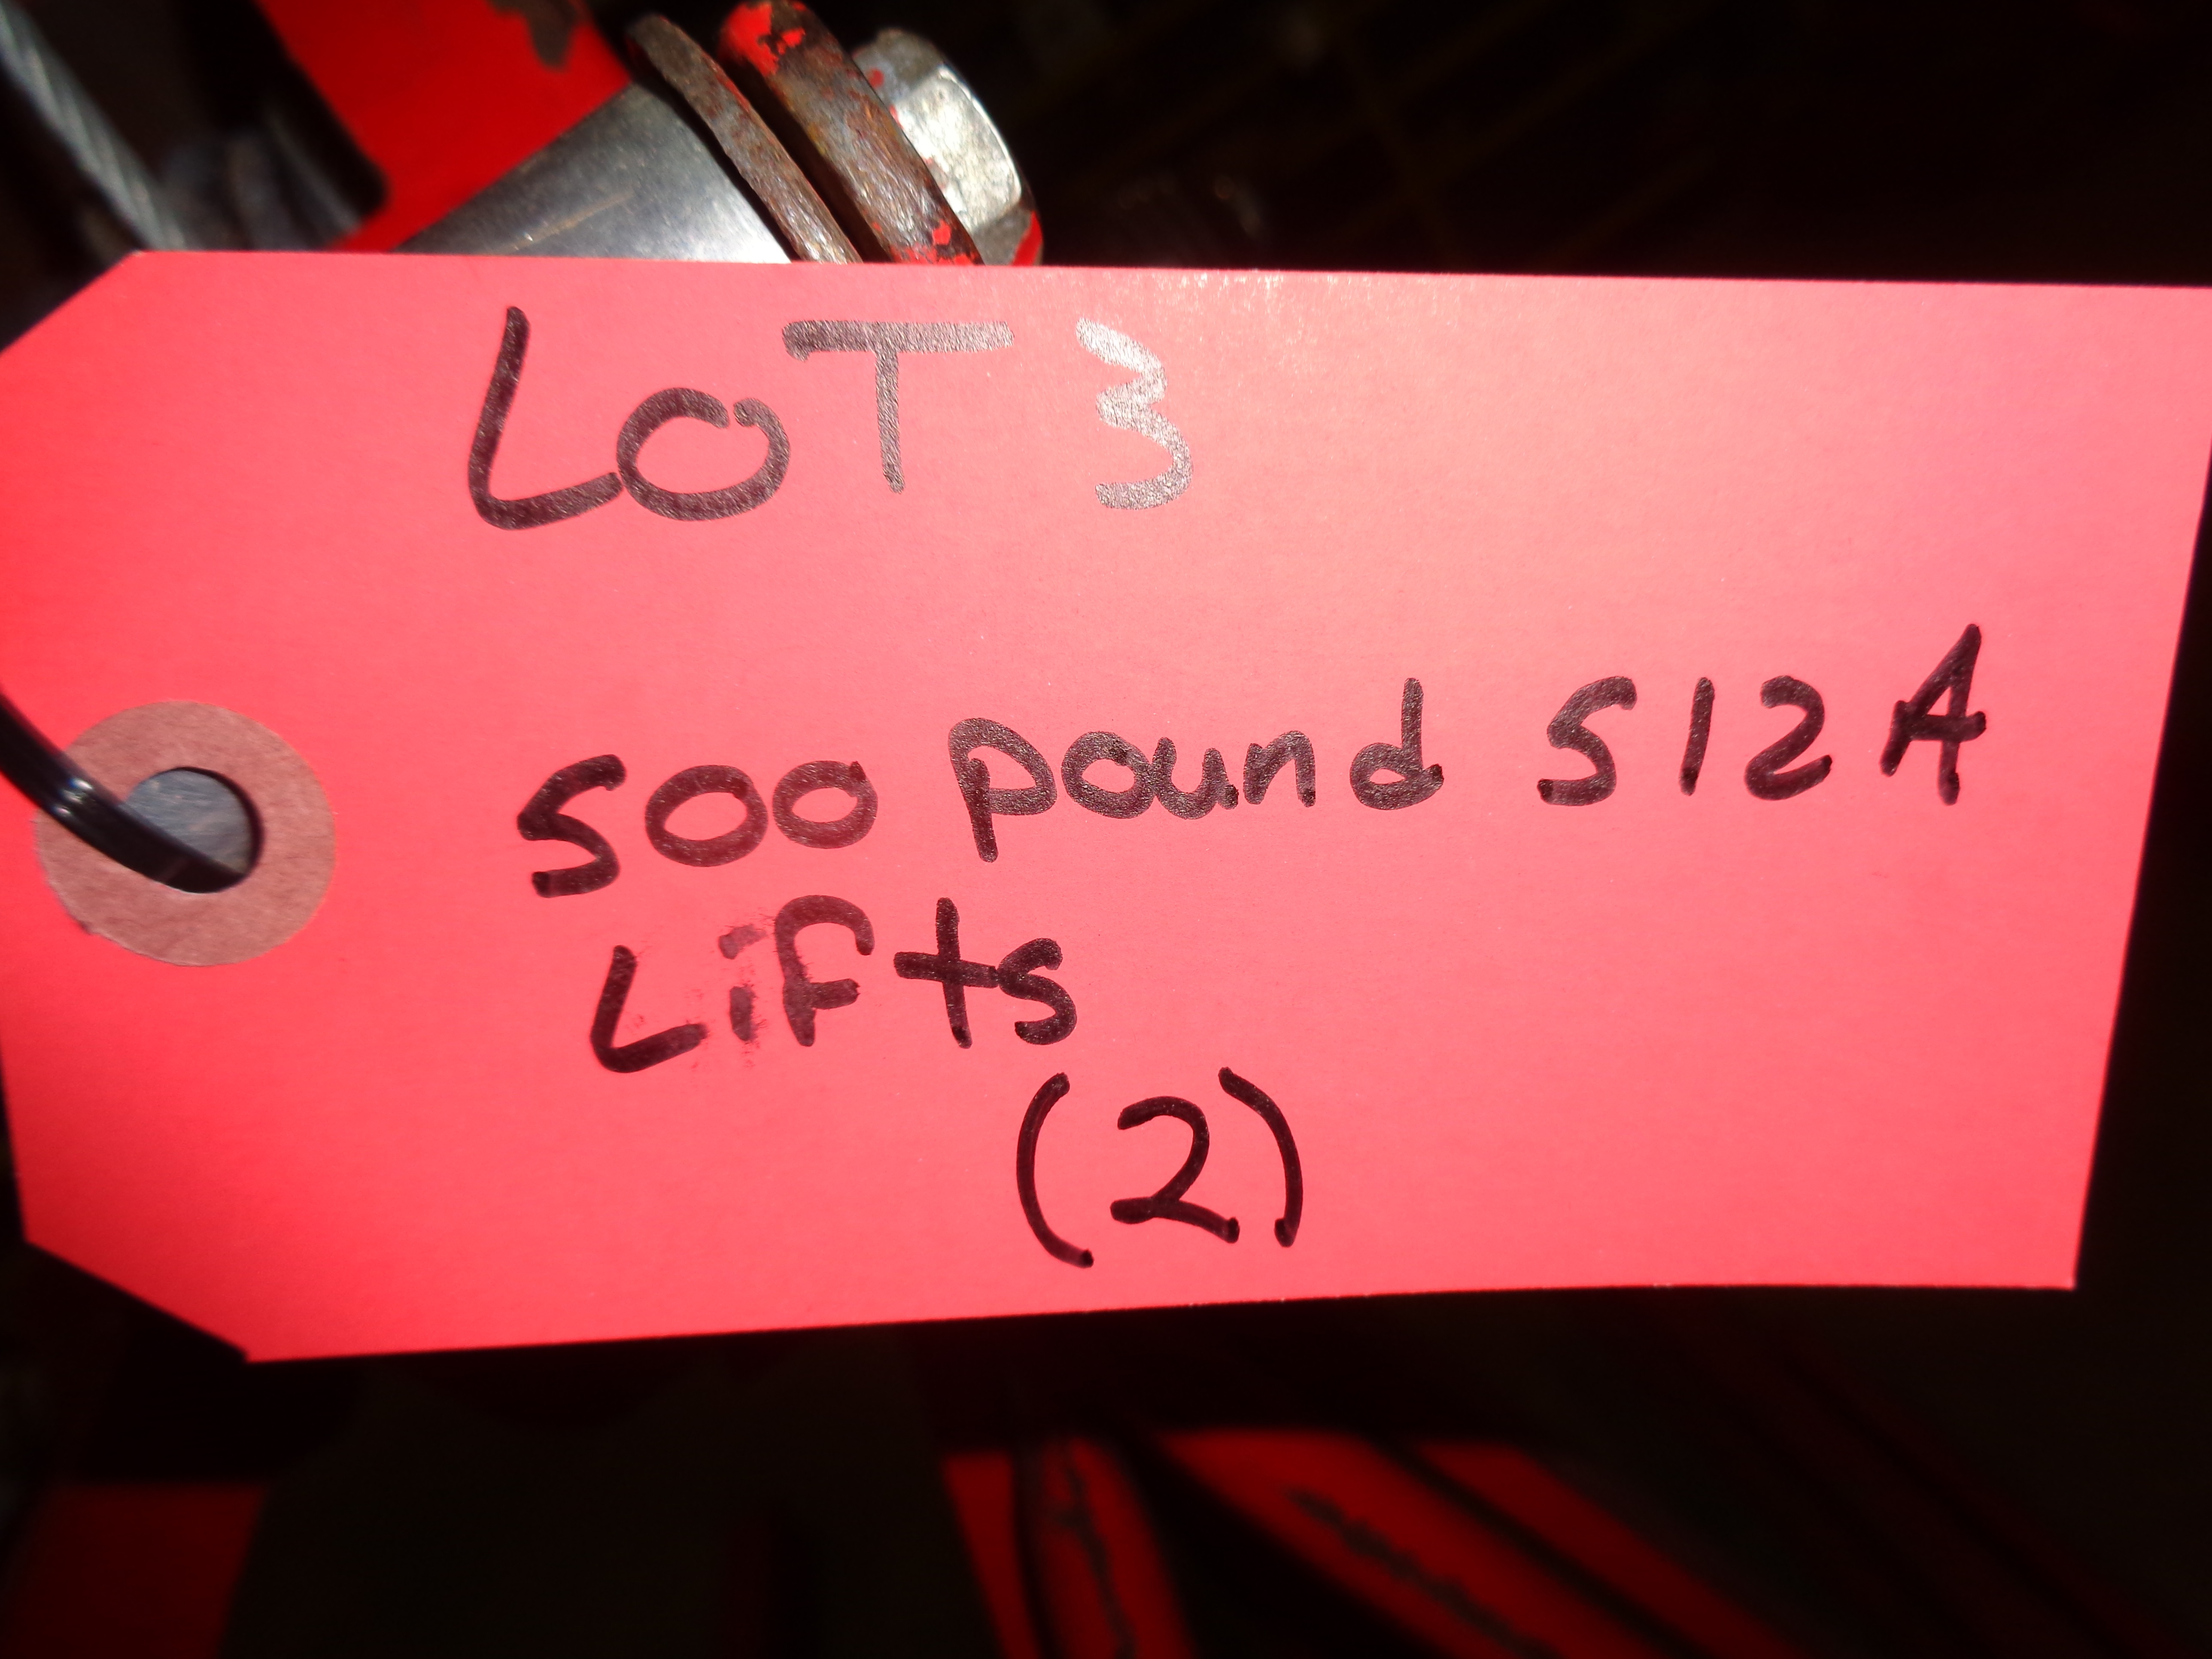 Lot of 2 - 500 lb 512A Lifts - Image 4 of 4